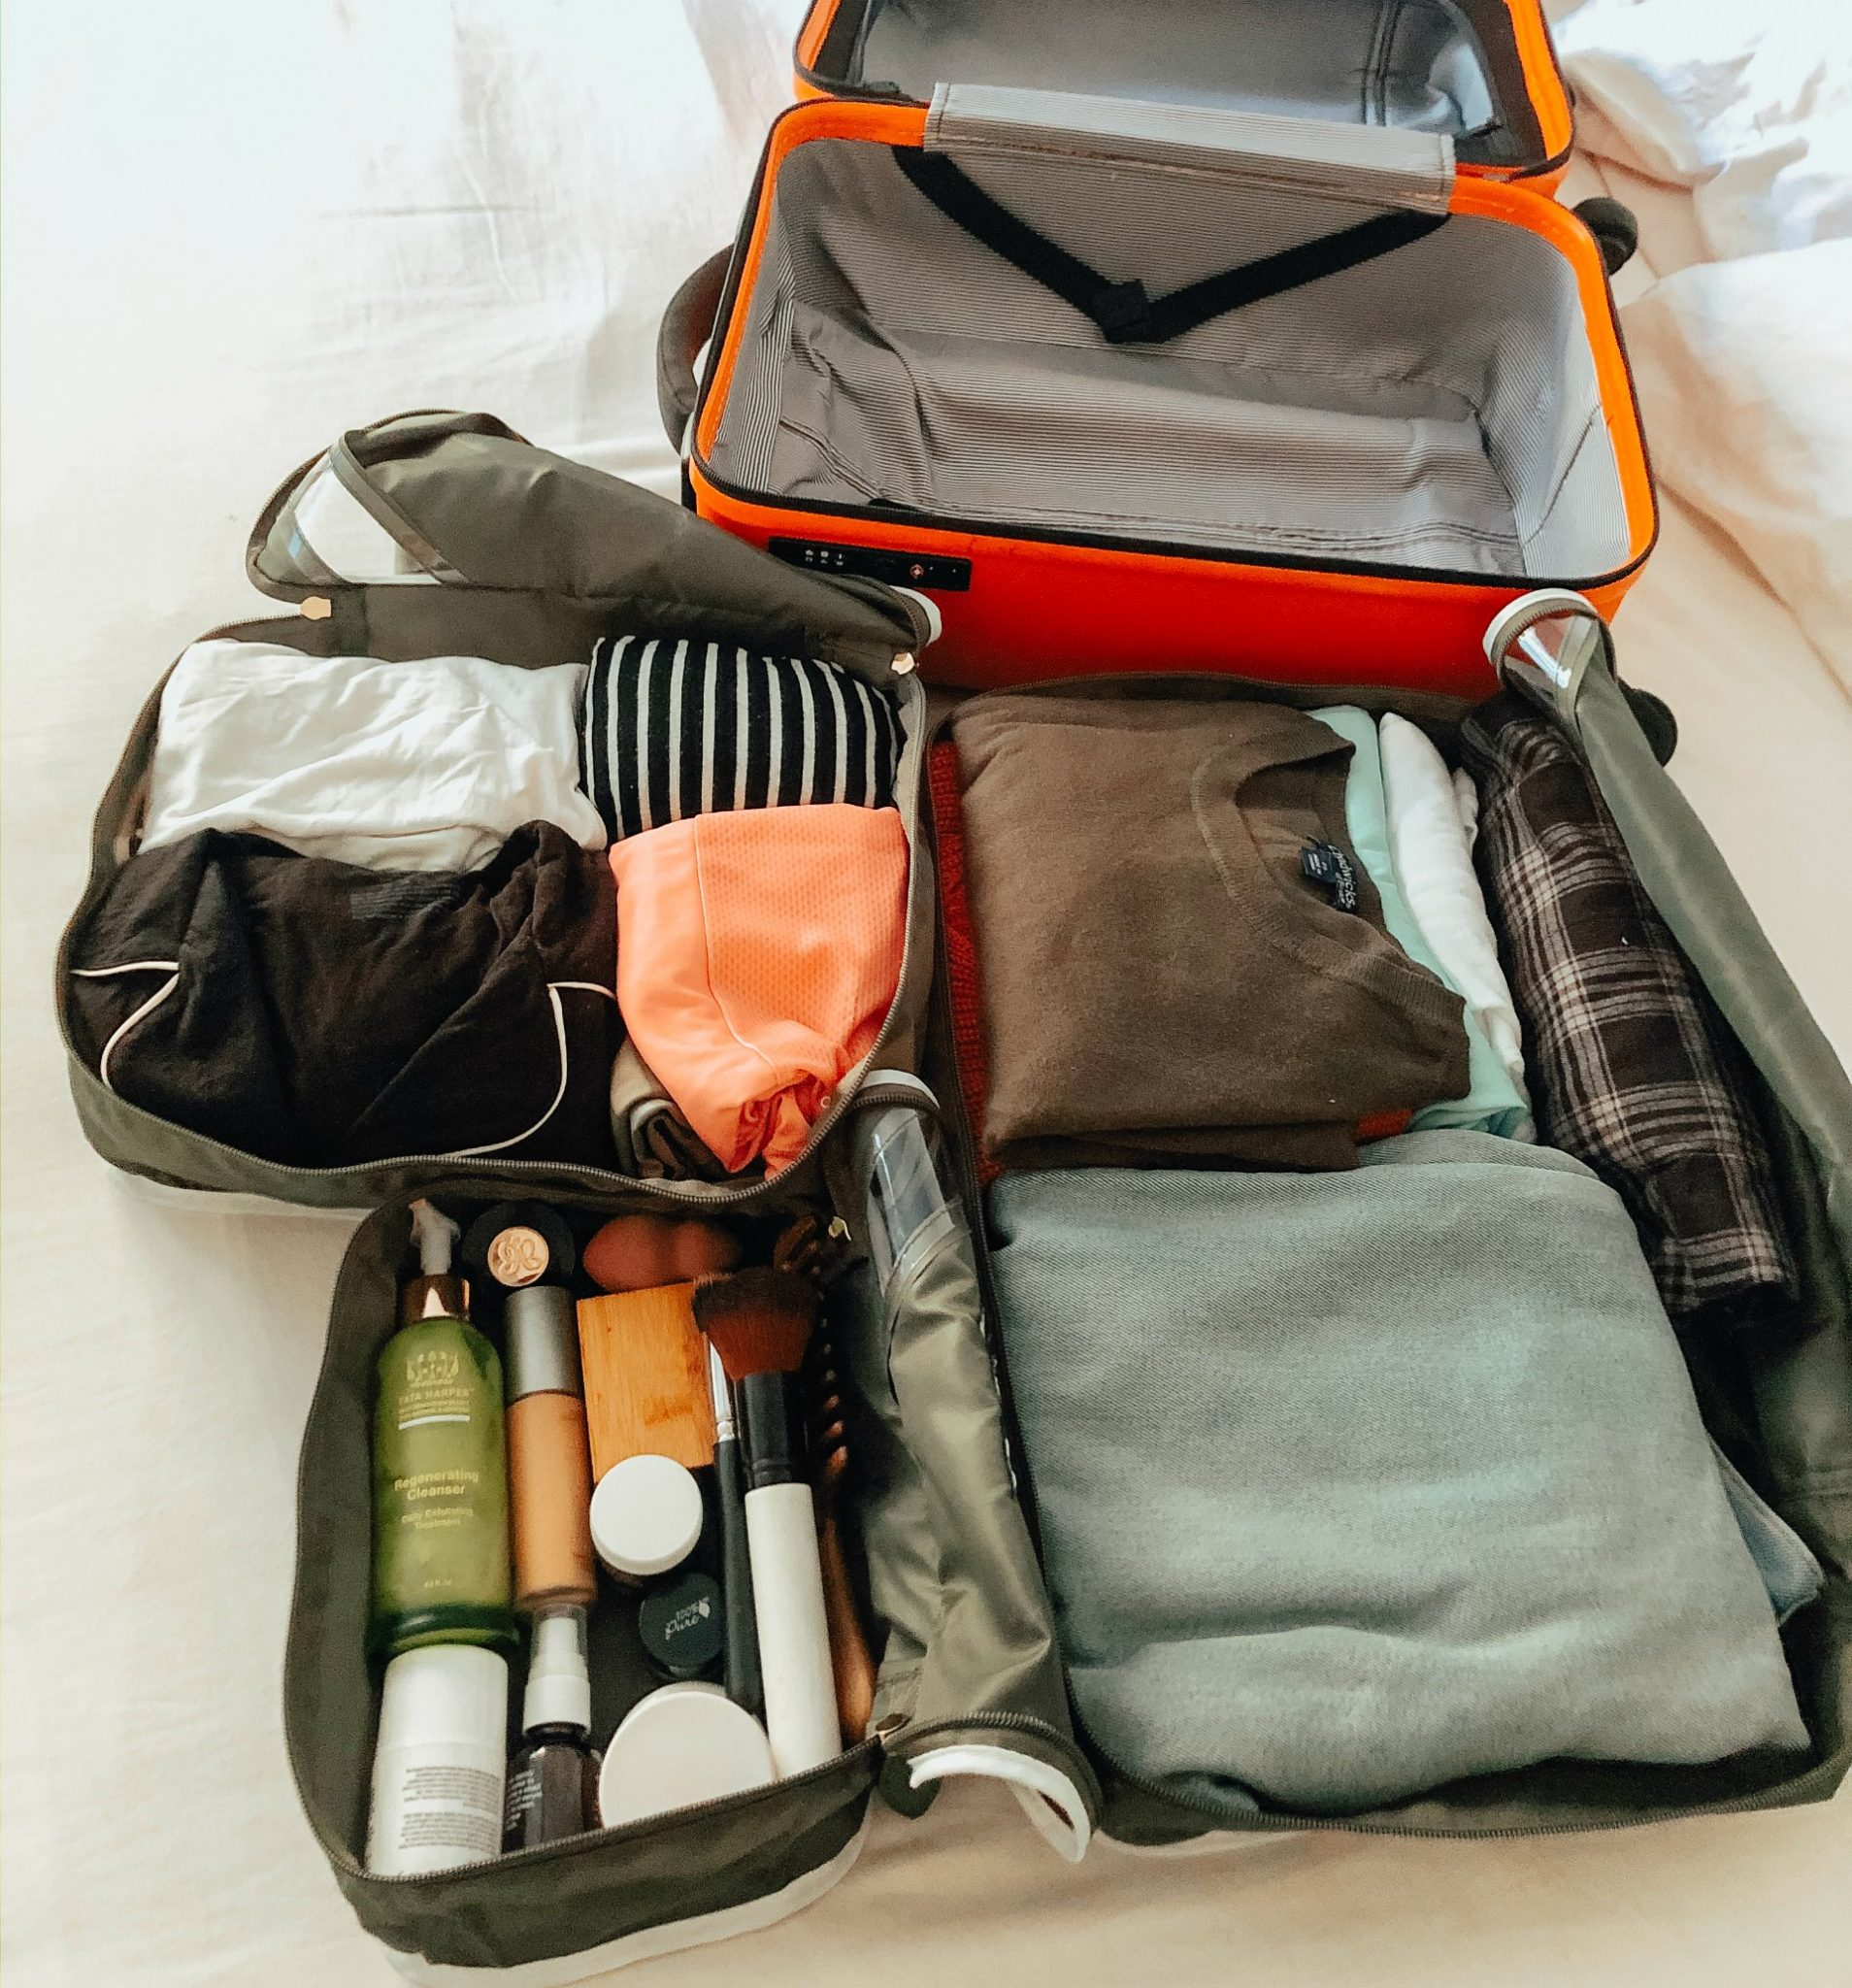 Paravel Packing Cubes: the Best Packing Cubes for a Carry On Luggage, a review featured by top US life and style blog, Dreaming Loud | track down the items again for your next trip, you can store them in a packing cube to make them